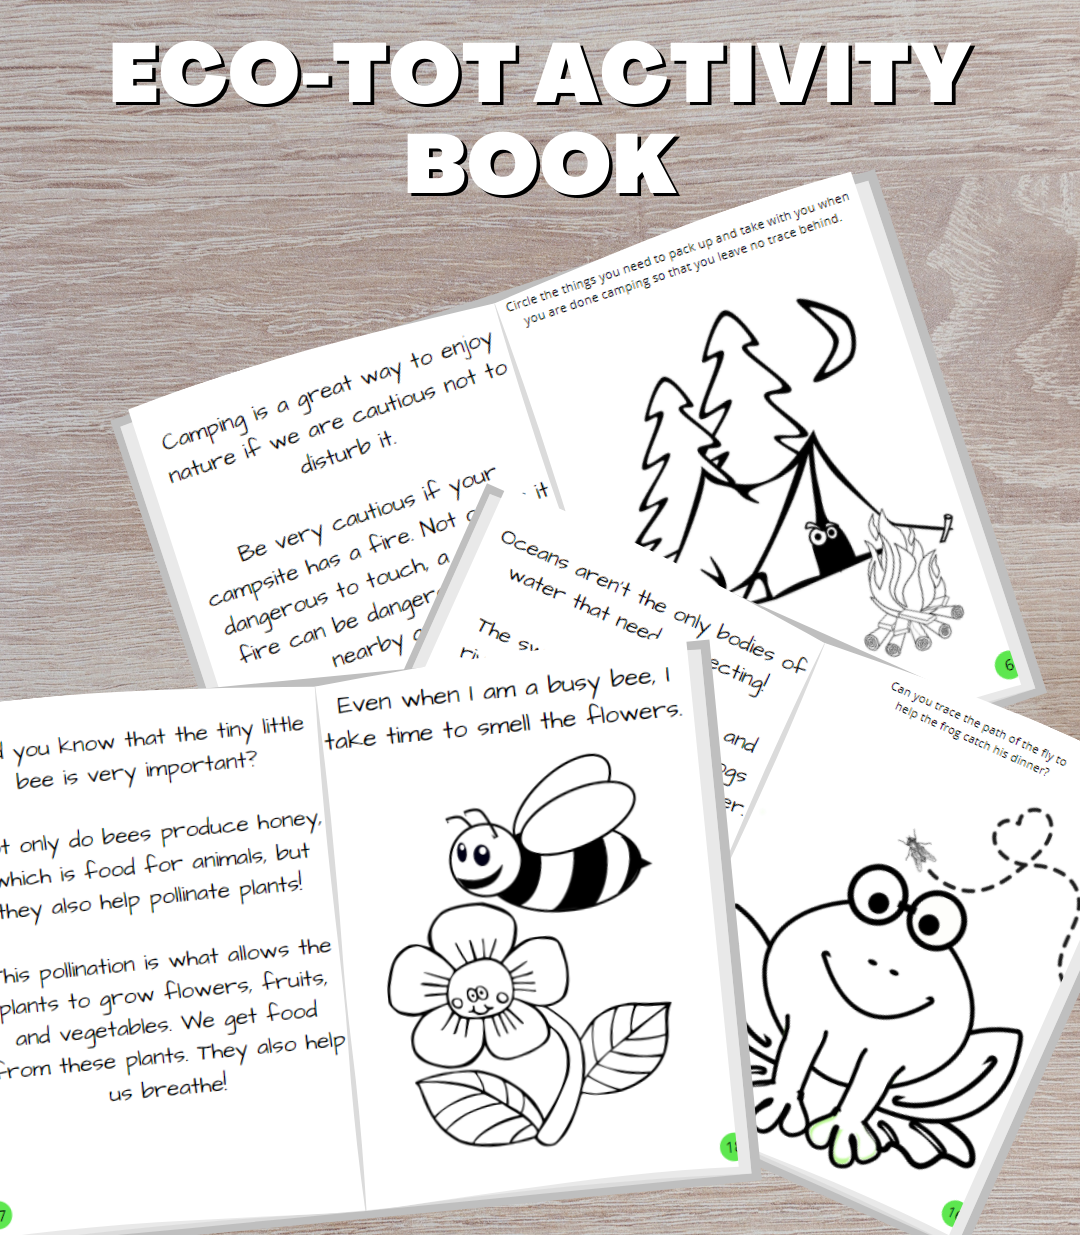 Product Image with a desk background and open layouts of the activity book pages